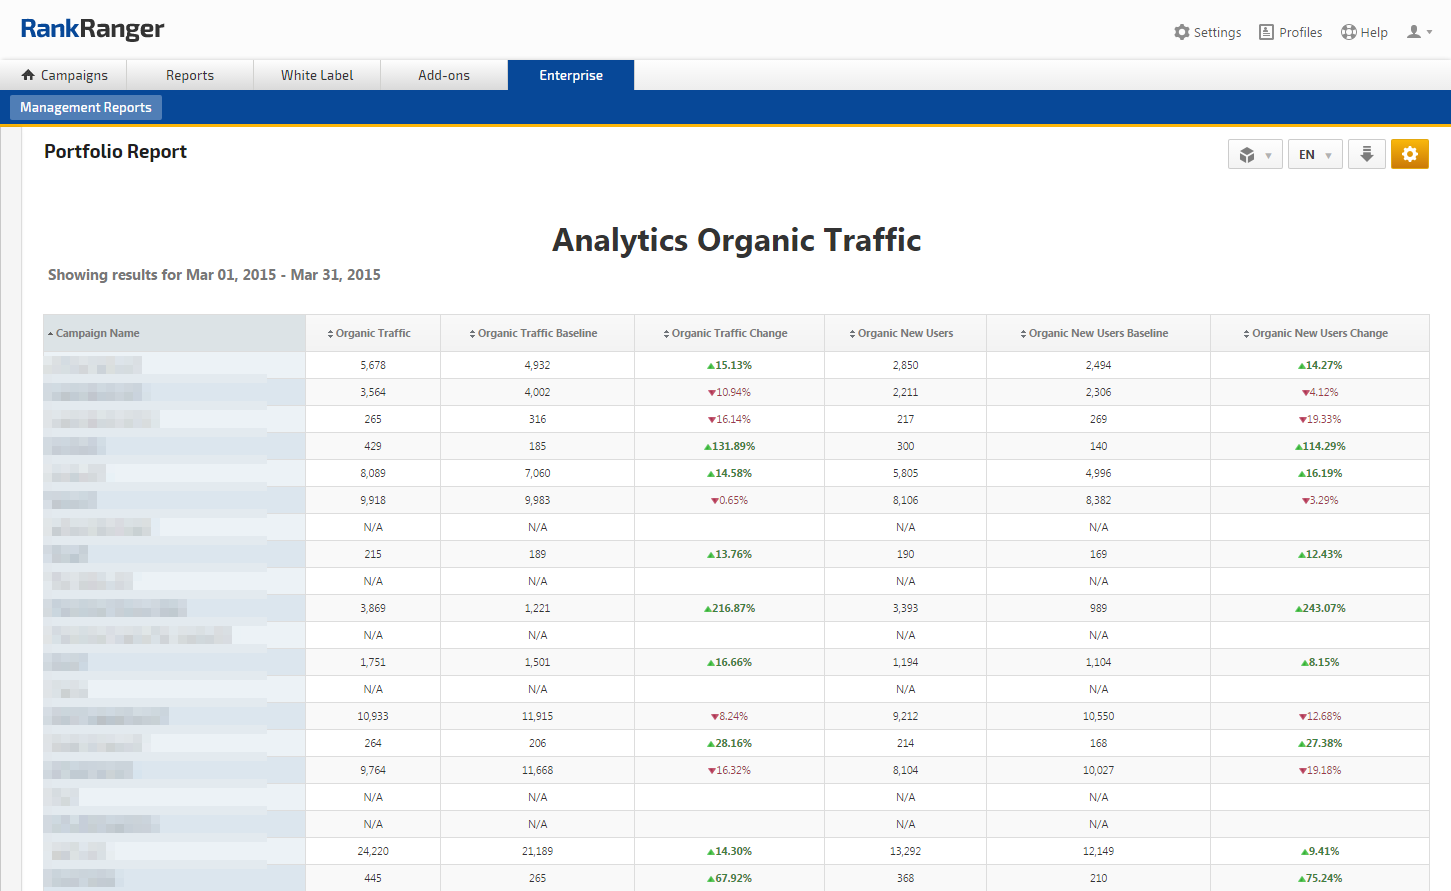 Campaigns Portfolio Report for Organic Traffic